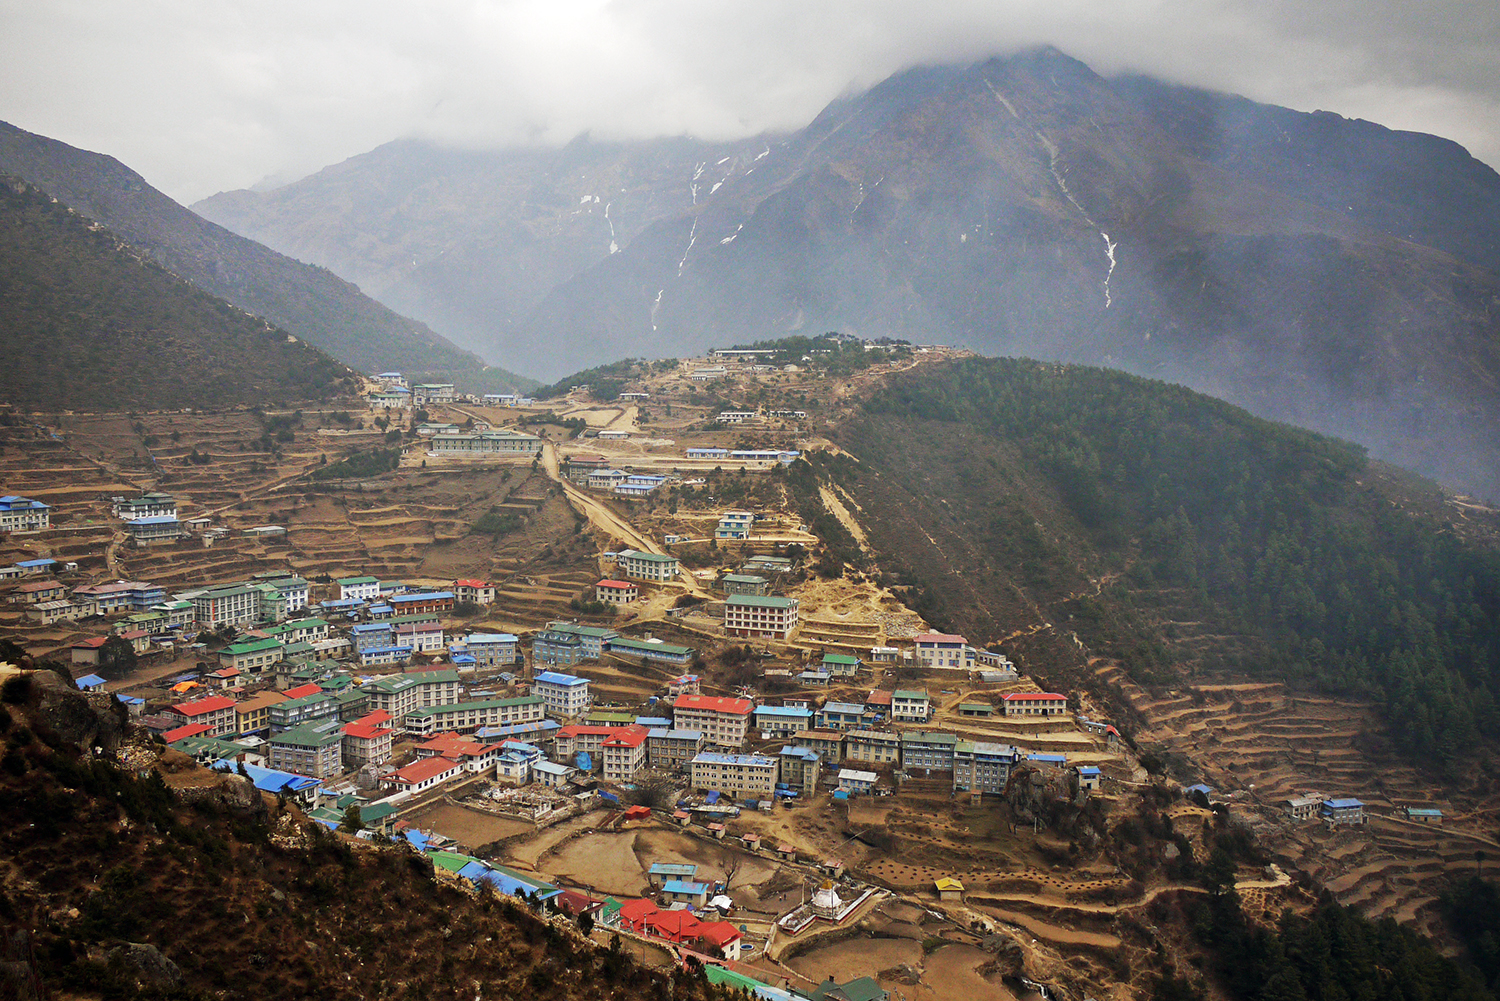 Namche Bazaar, the biggest town on the Everest Base Camp trail - home to the highest post office in the world